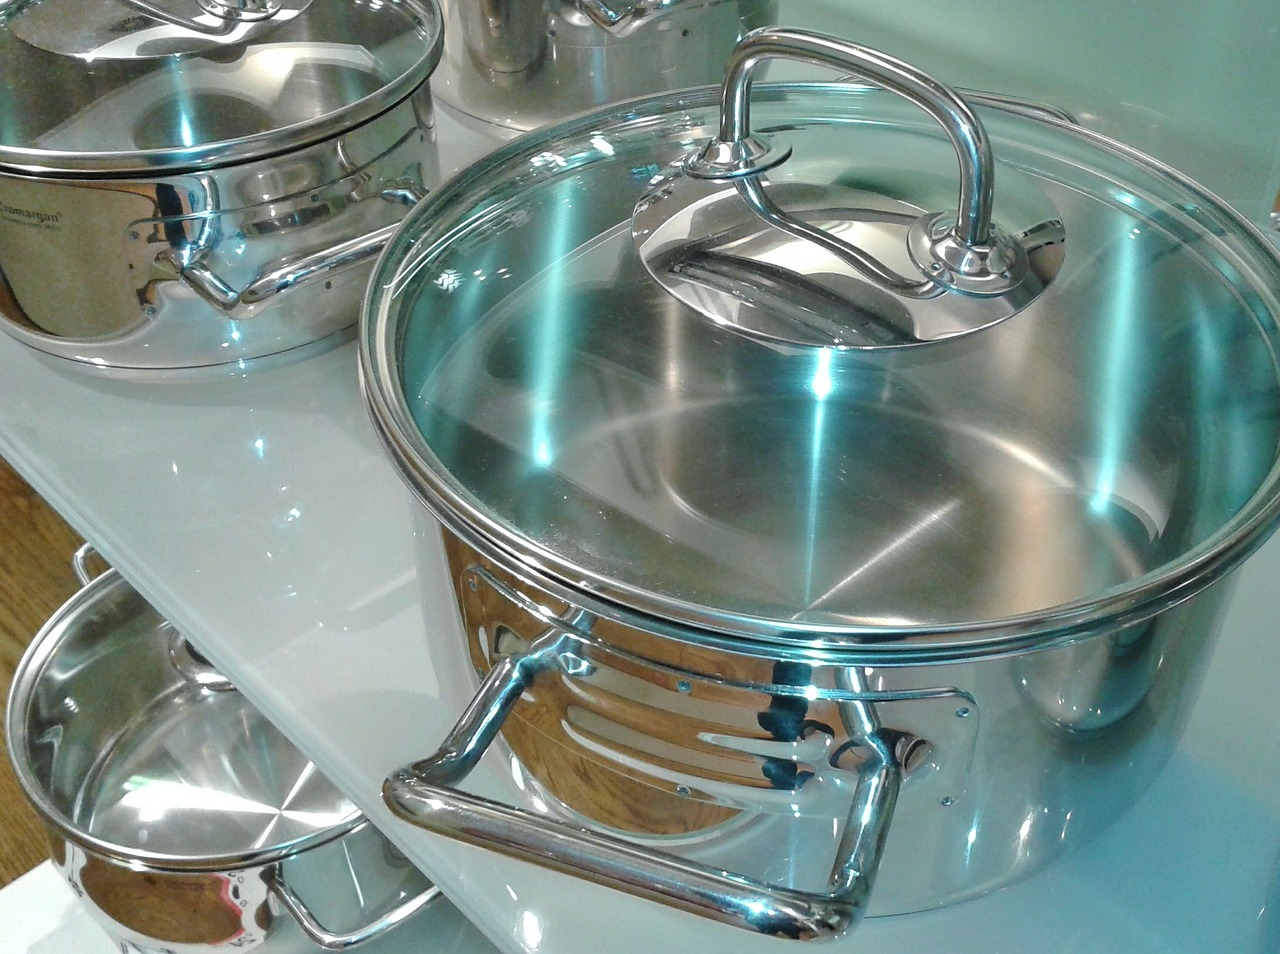 How To Clean Stainless Steel Utensils: Here's A Simple Guide To Follow